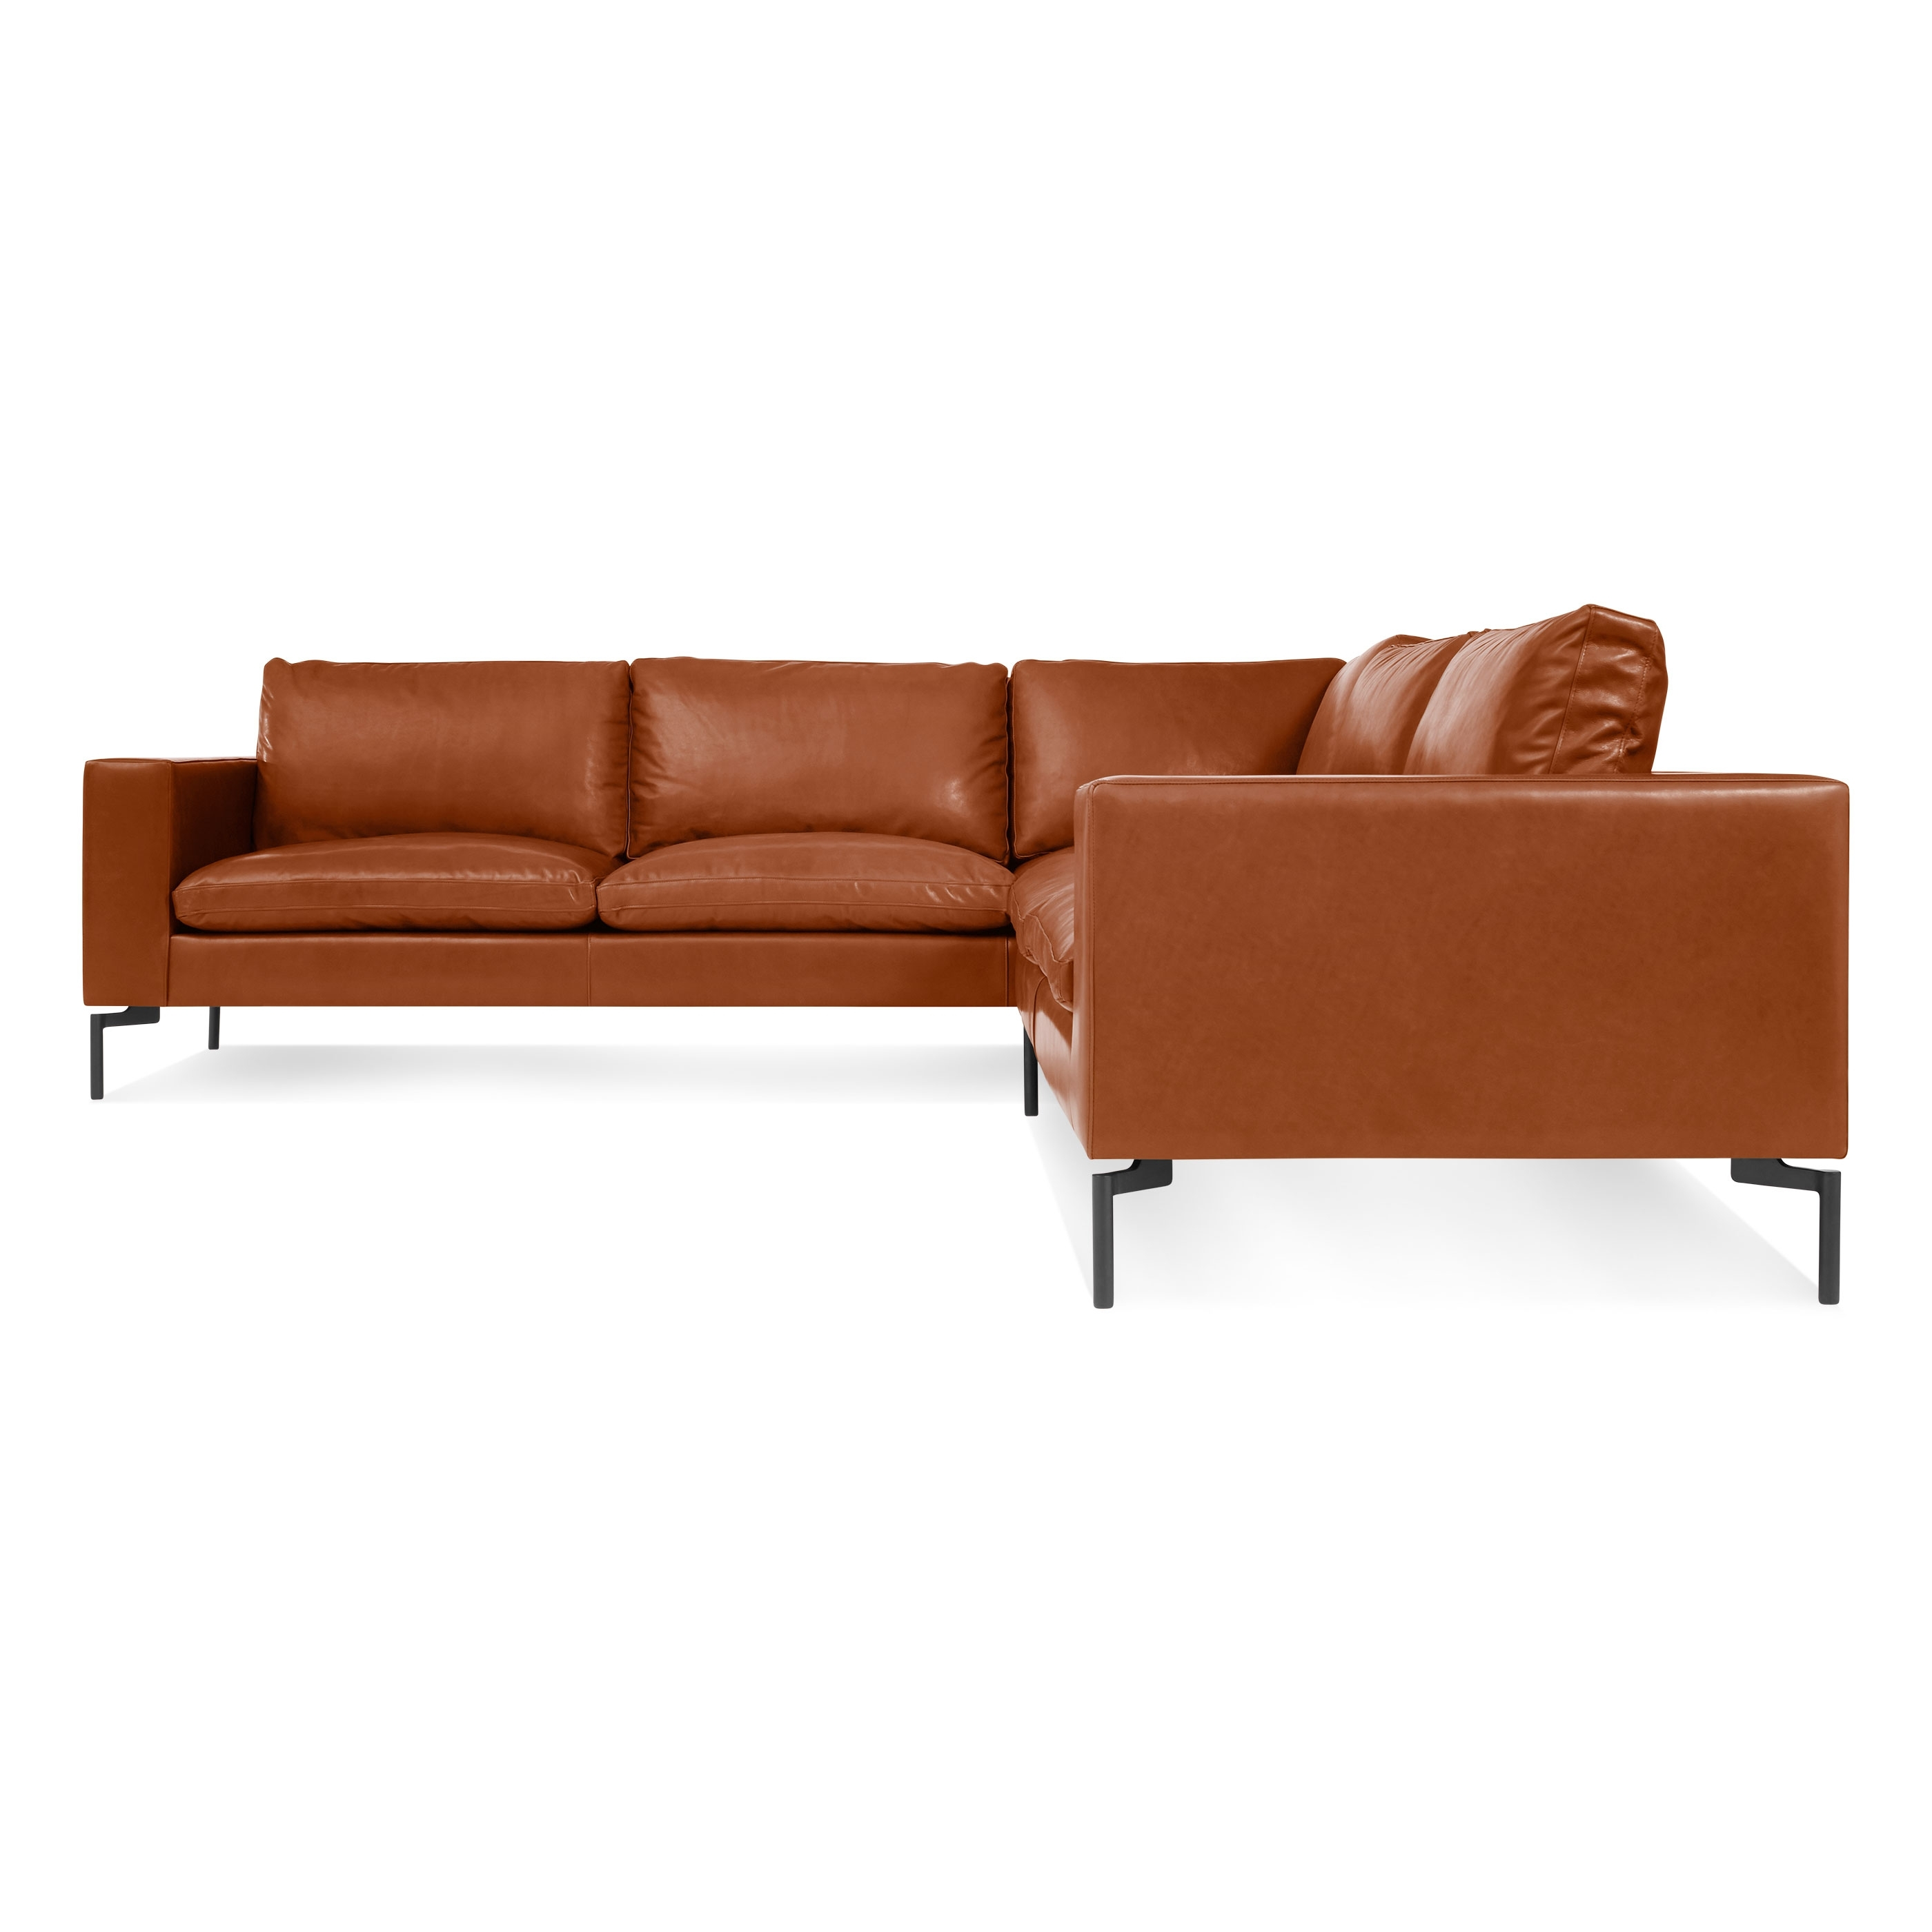 New Standard Small Leather Sectional – Modern Leather Sofa (View 13 of 15)